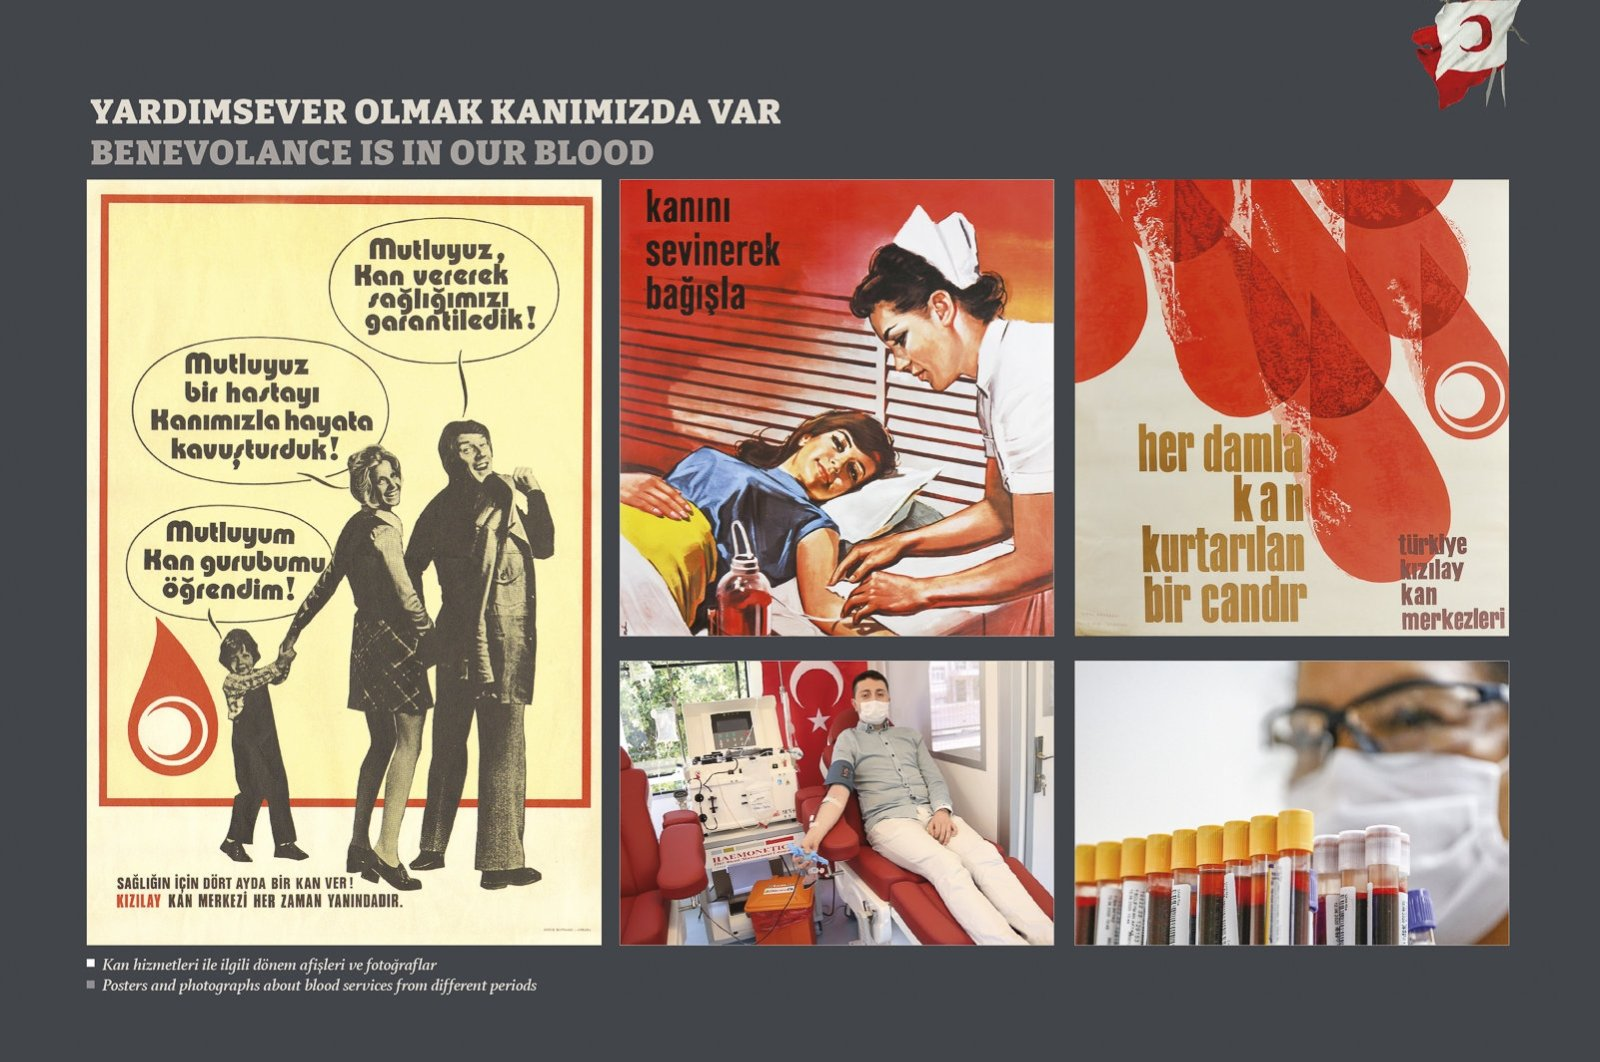 Posters and photos about blood services of the Turkish Red Crescent from different periods. (Archive Photo)